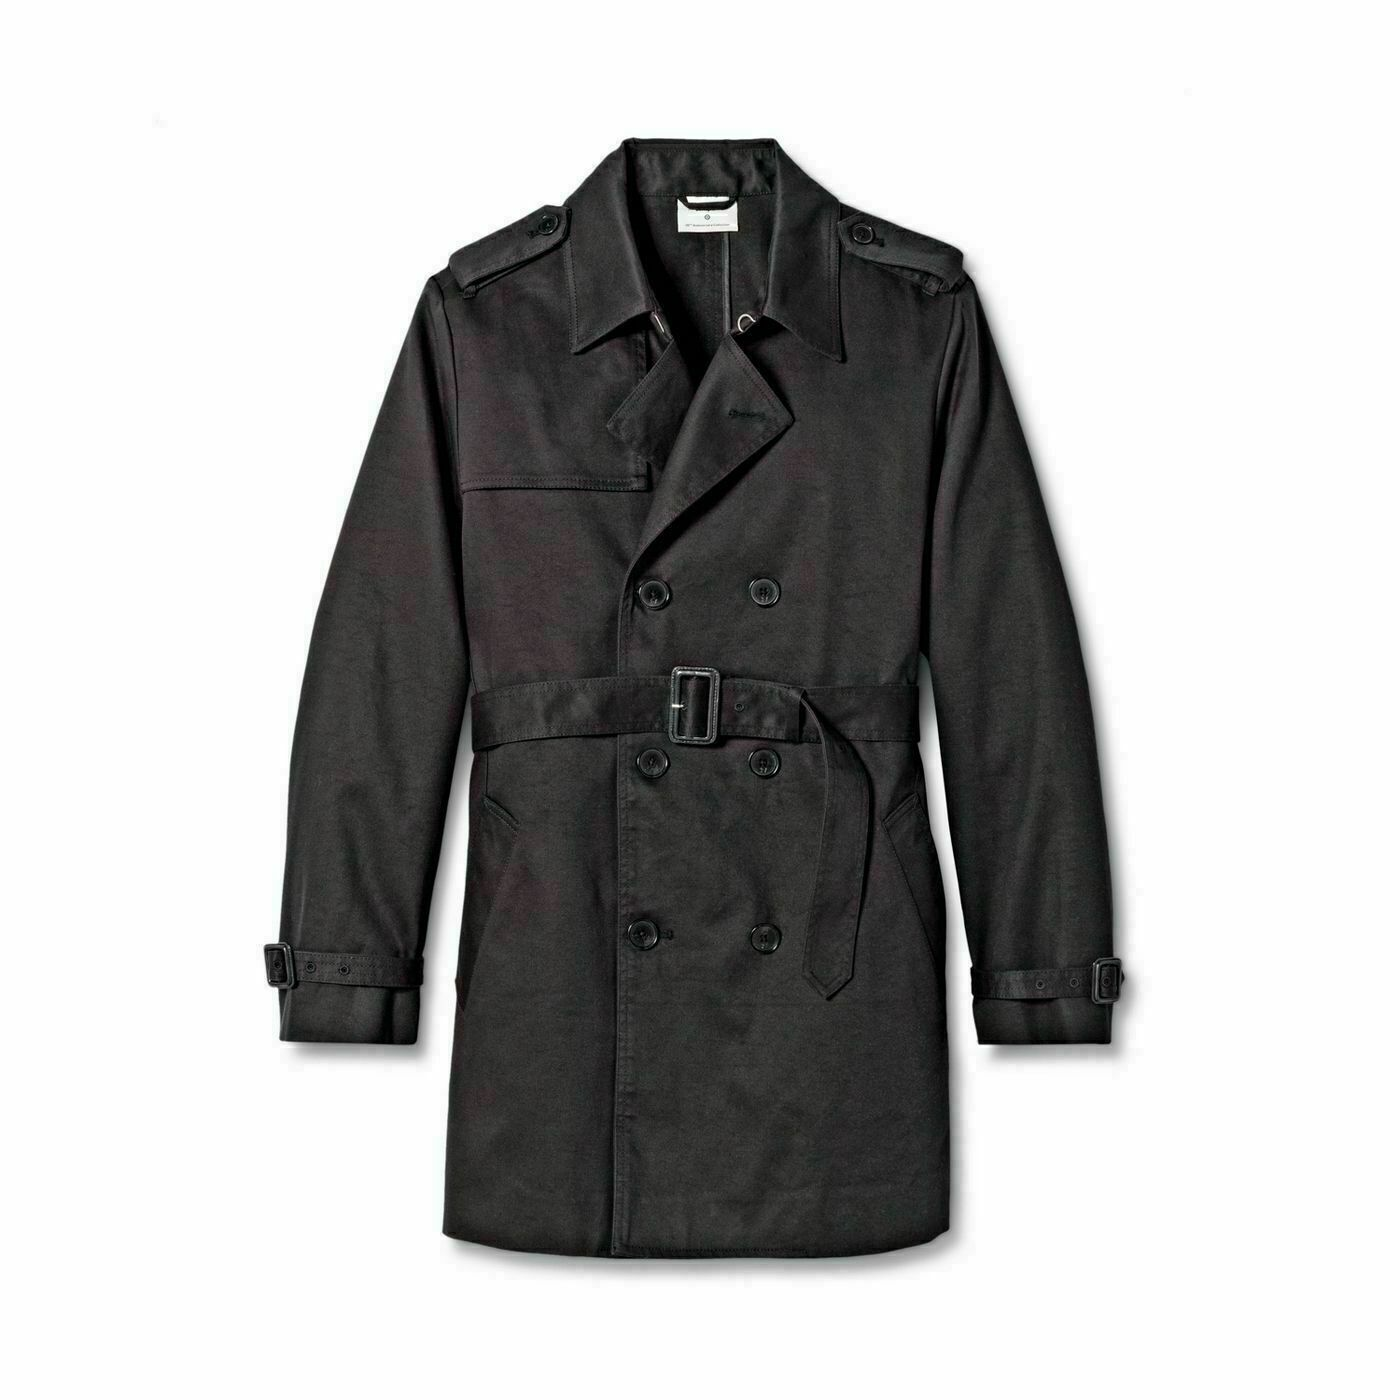 3.1 Phillip Lim Mens Front Button-Down Trench Coat (Black Small) Clothing, Shoes & Accessories